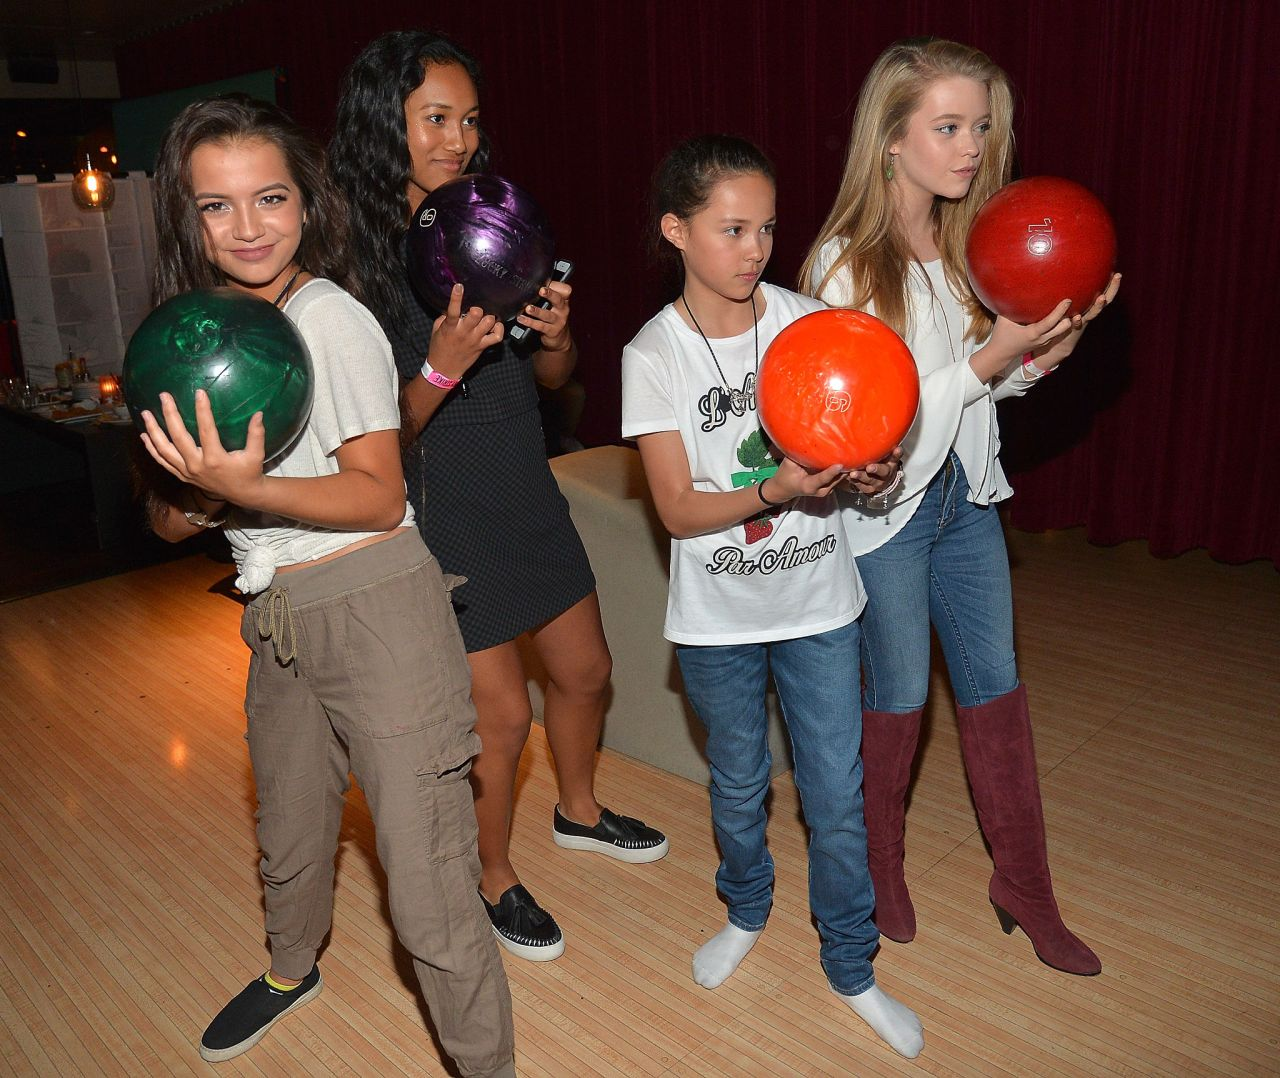 Breanna Yde's 13th Birthday Party At Lucky